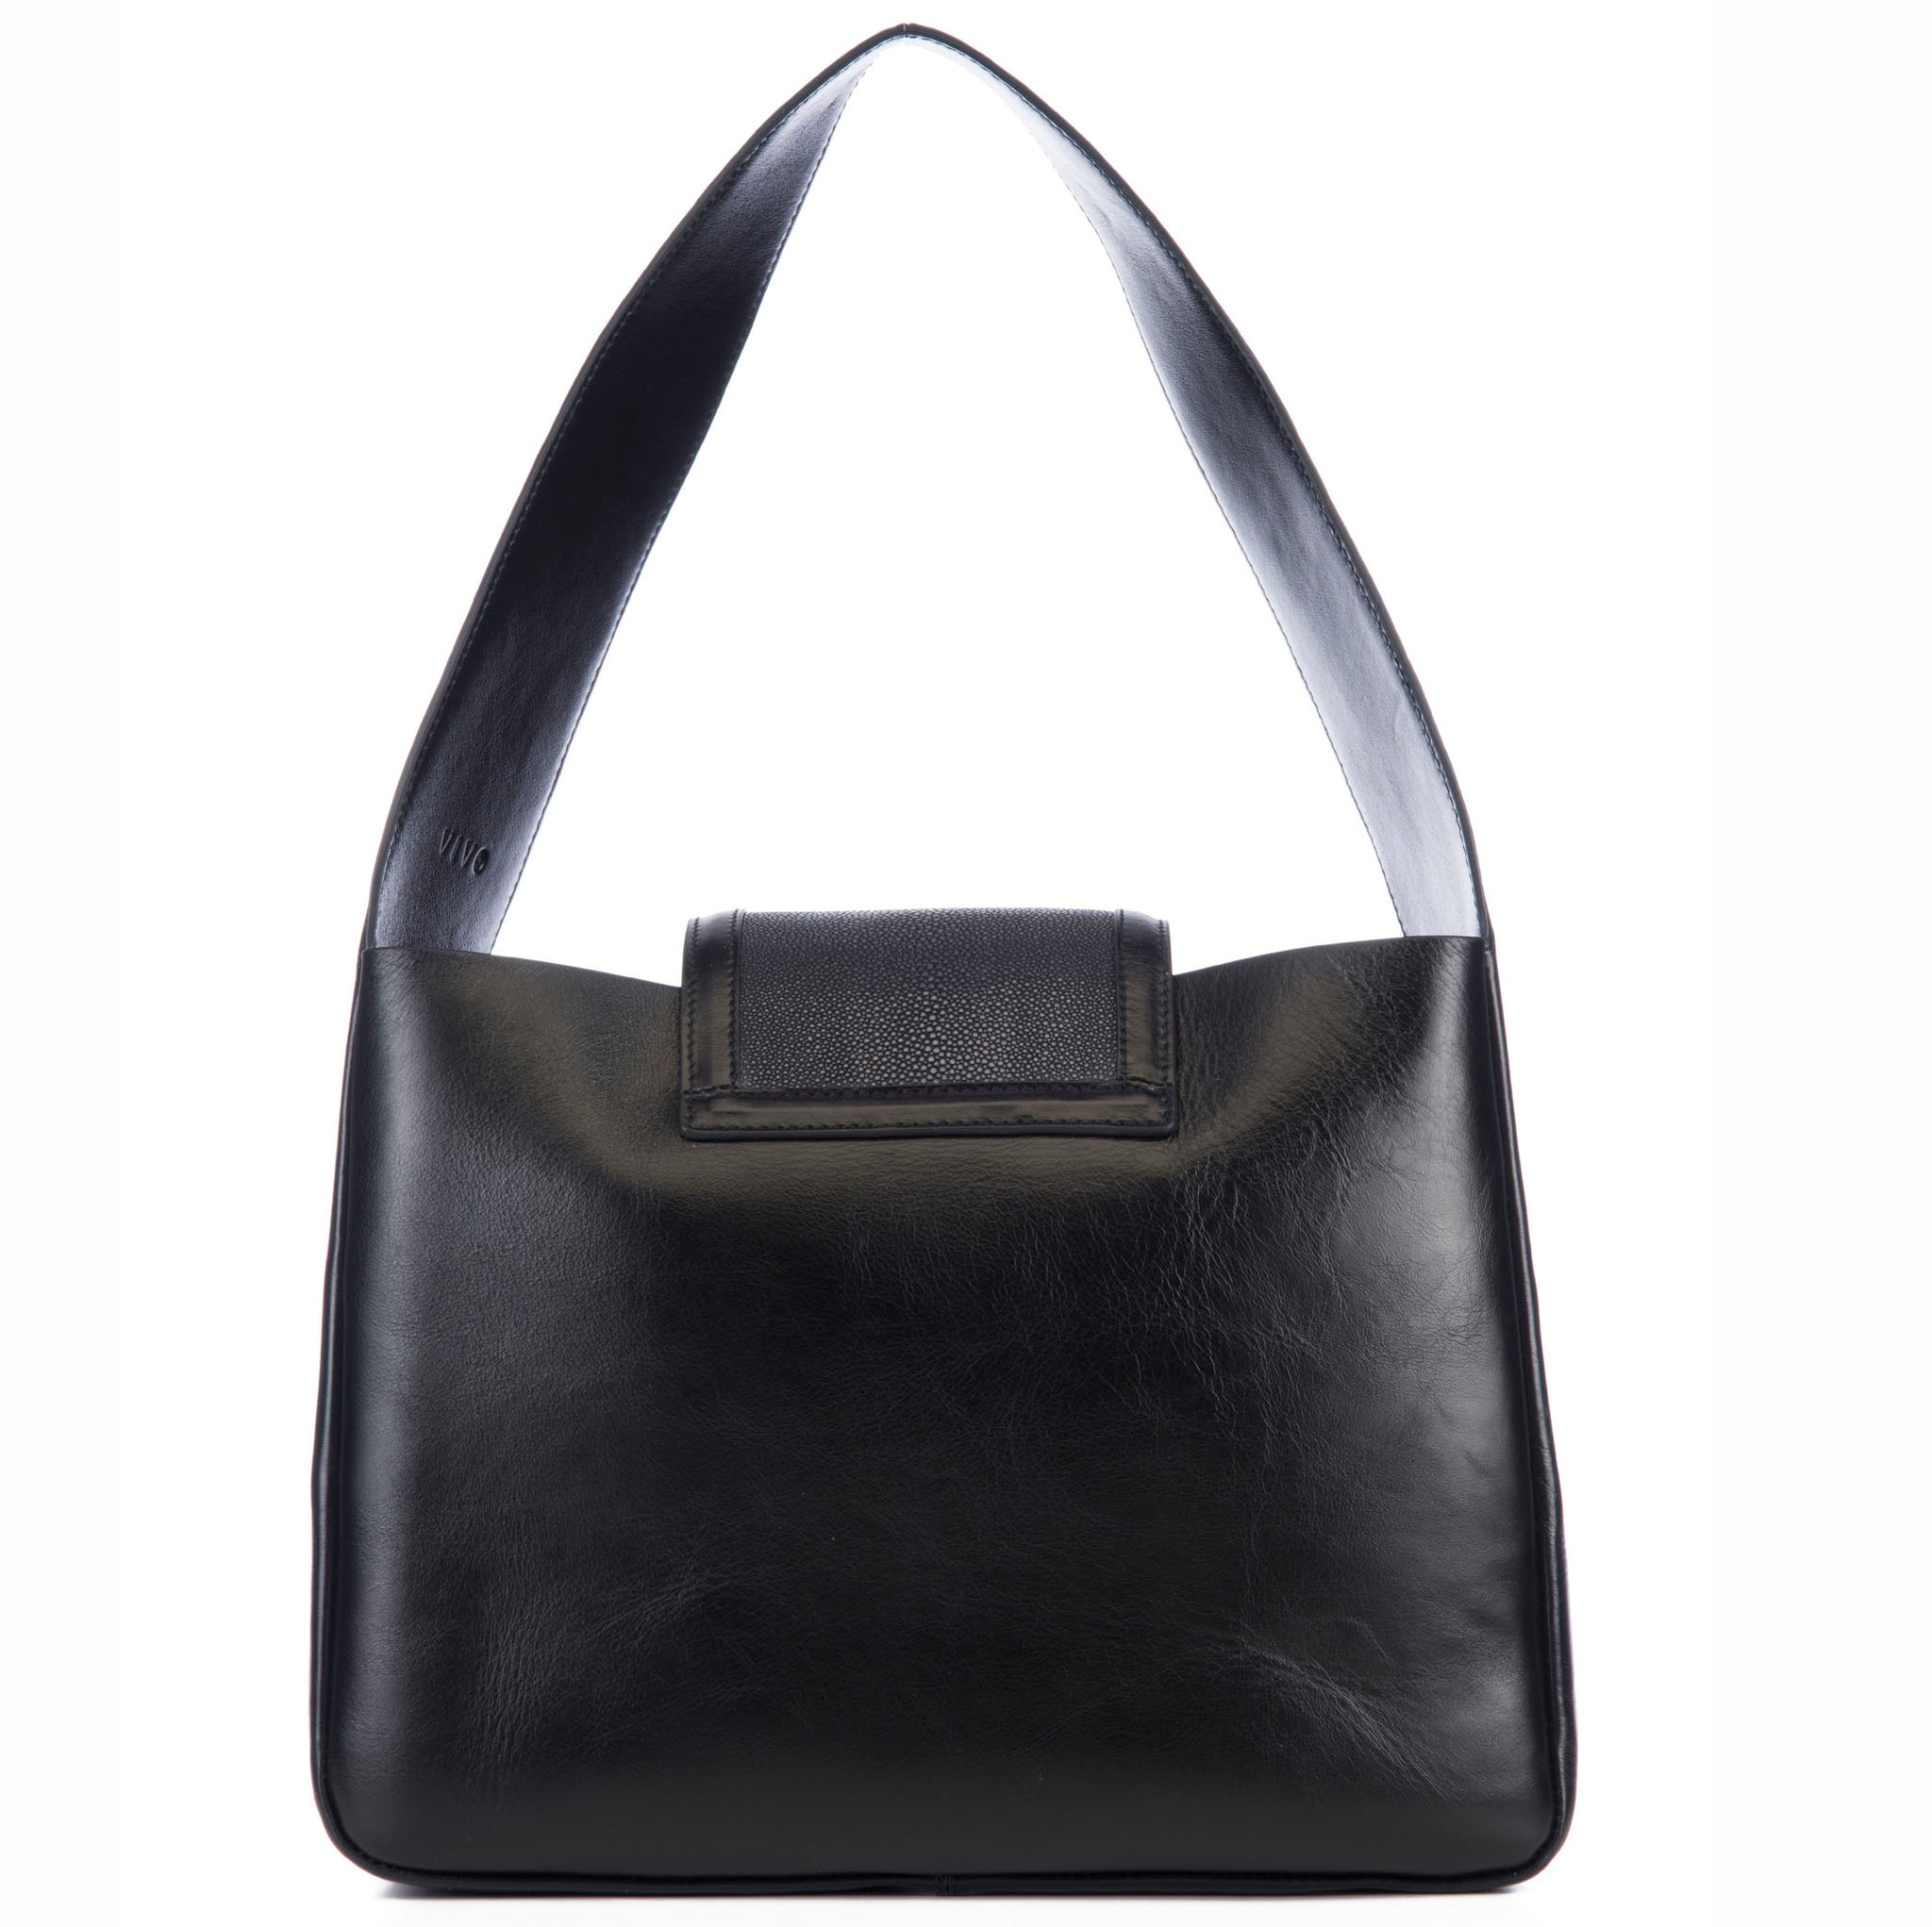 Eve Black Leather Shoulder Tote With Black Shagreen Flap And Leather Knot Detail Back View - Vivo Direct